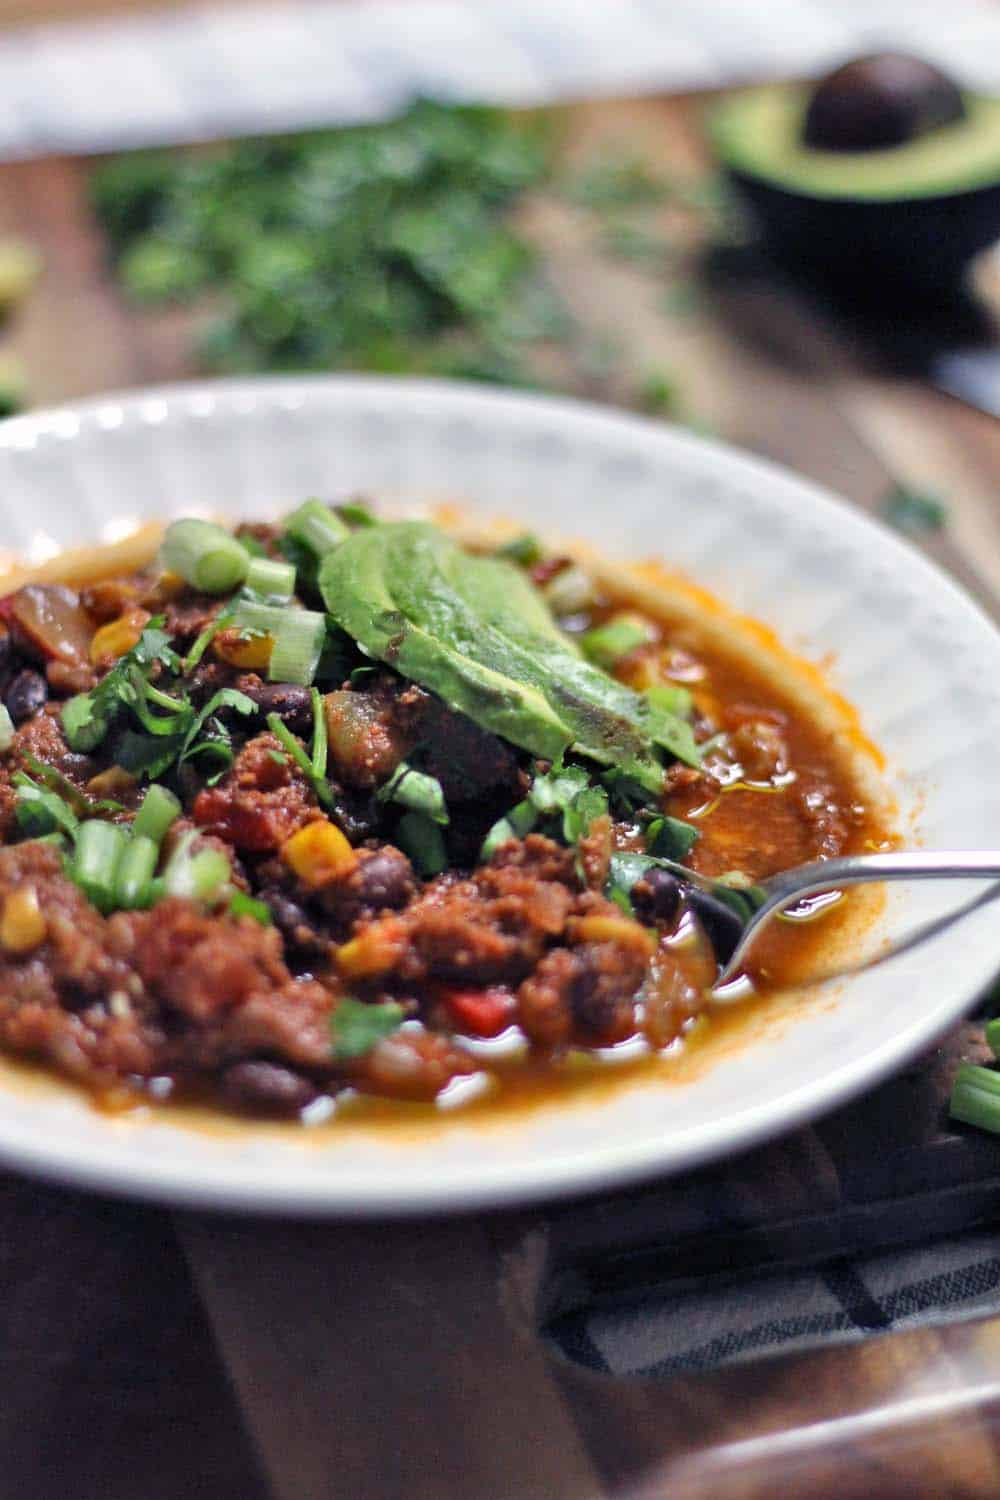 A secret ingredient in this healthy, low carb, vegetable packed turkey chili makes it super velvety and rich- it's the most delicious thing to come home to after a long day of work!